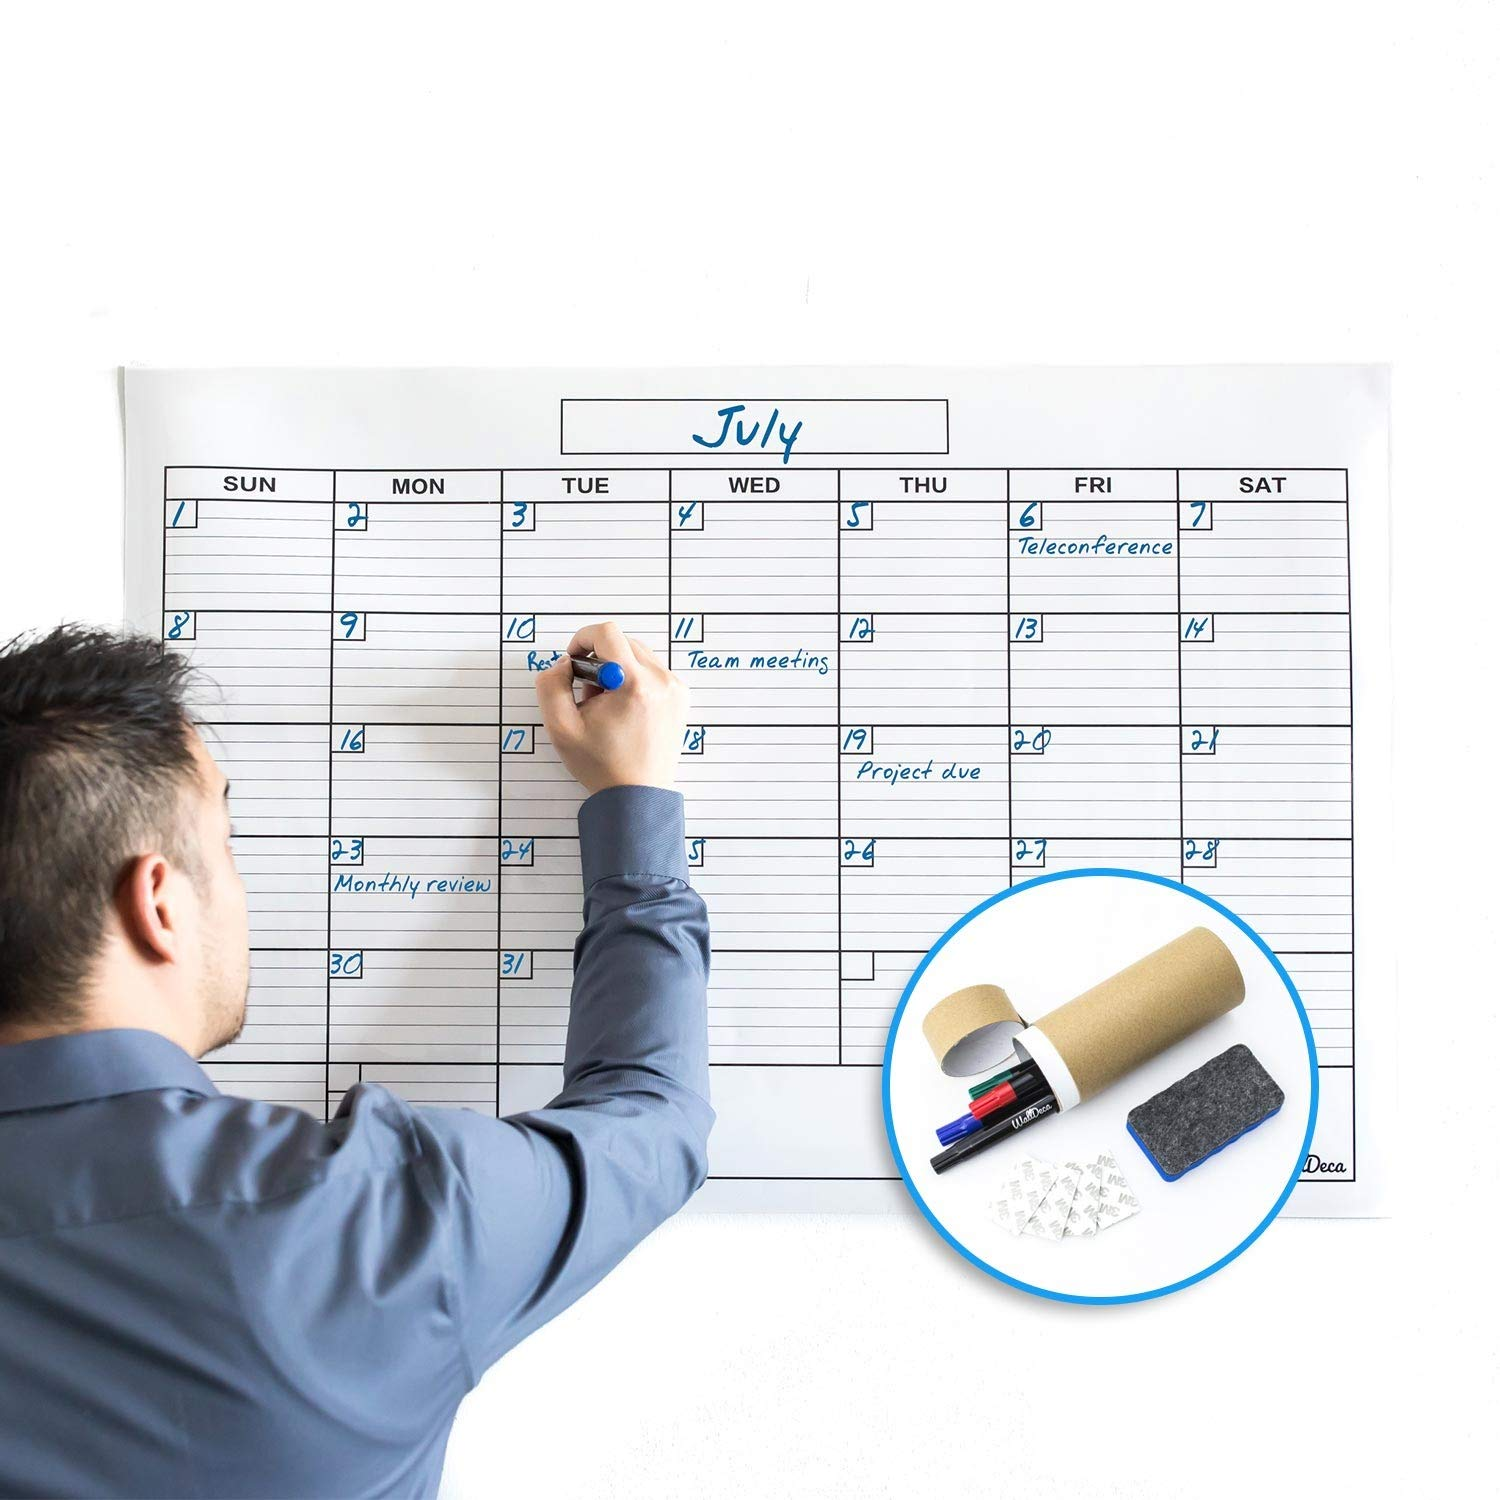 Jumbo Large Dry Erase Wall Monthly Calendar Planner Whiteboard: Wipe Off  Erasable Calendar with Bonus Hanging Kit | WallDeca, Use in Classroom,